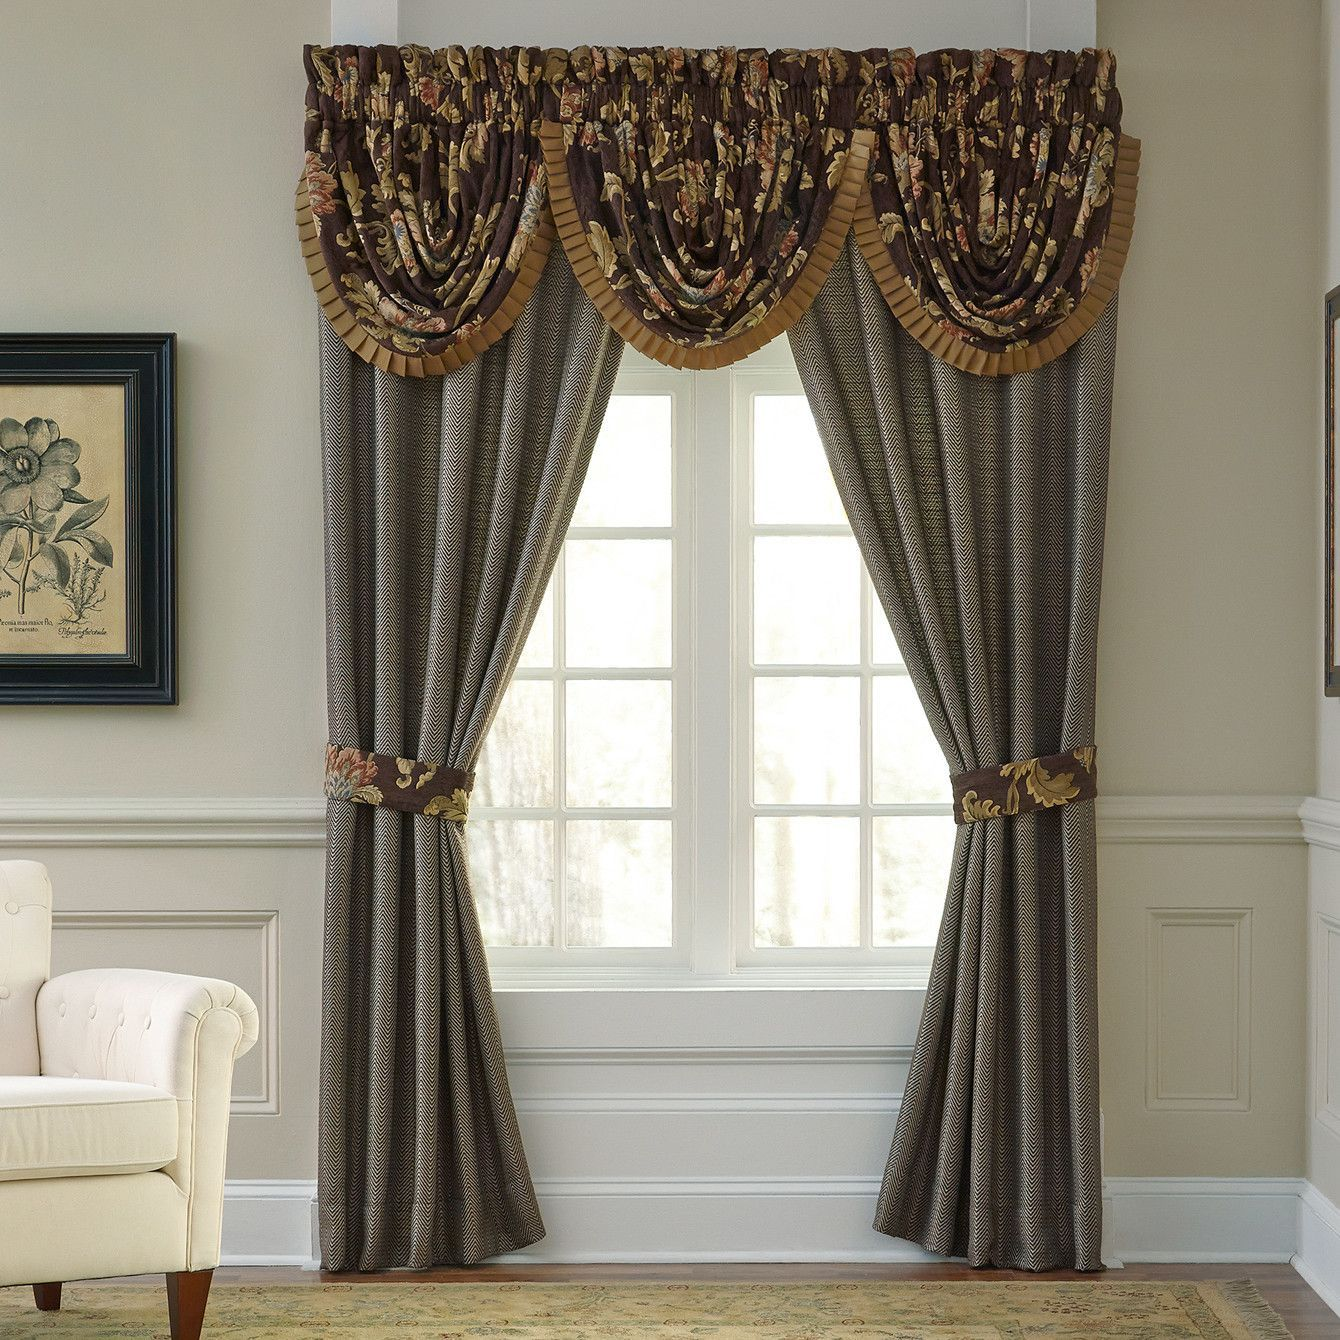 Solid Blackout Thermal Grommet Curtain Panels Set Of 2 Panel Curtains Curtains Drapes Curtains